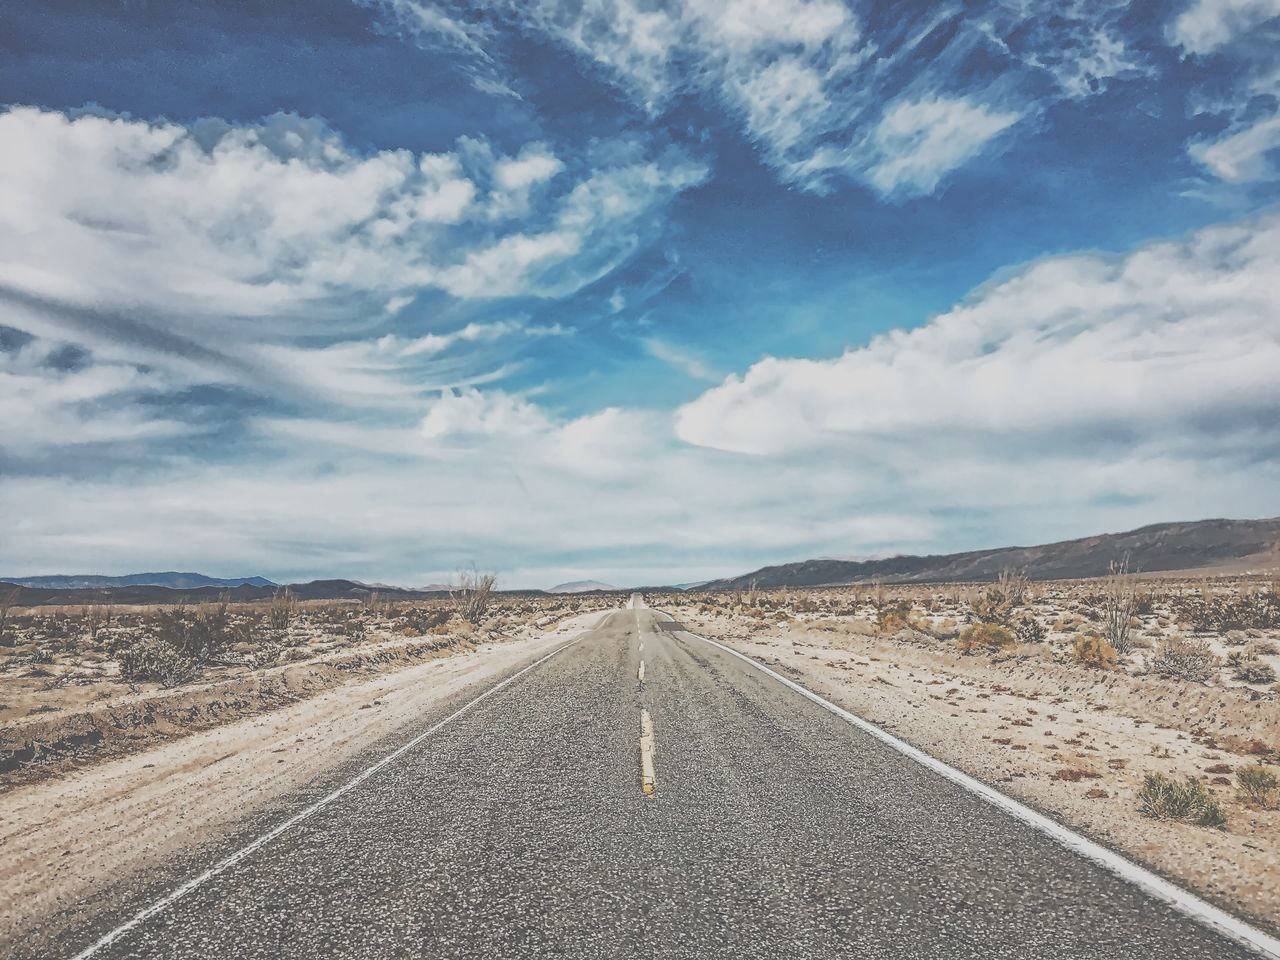 Adventure Awesome California Cloud - Sky Day Desert Desert Driving Exploring Landscape Mountain Nature No People On The Road Outdoors Road Road Trip Sand Scenics Sky The Way Forward Travel